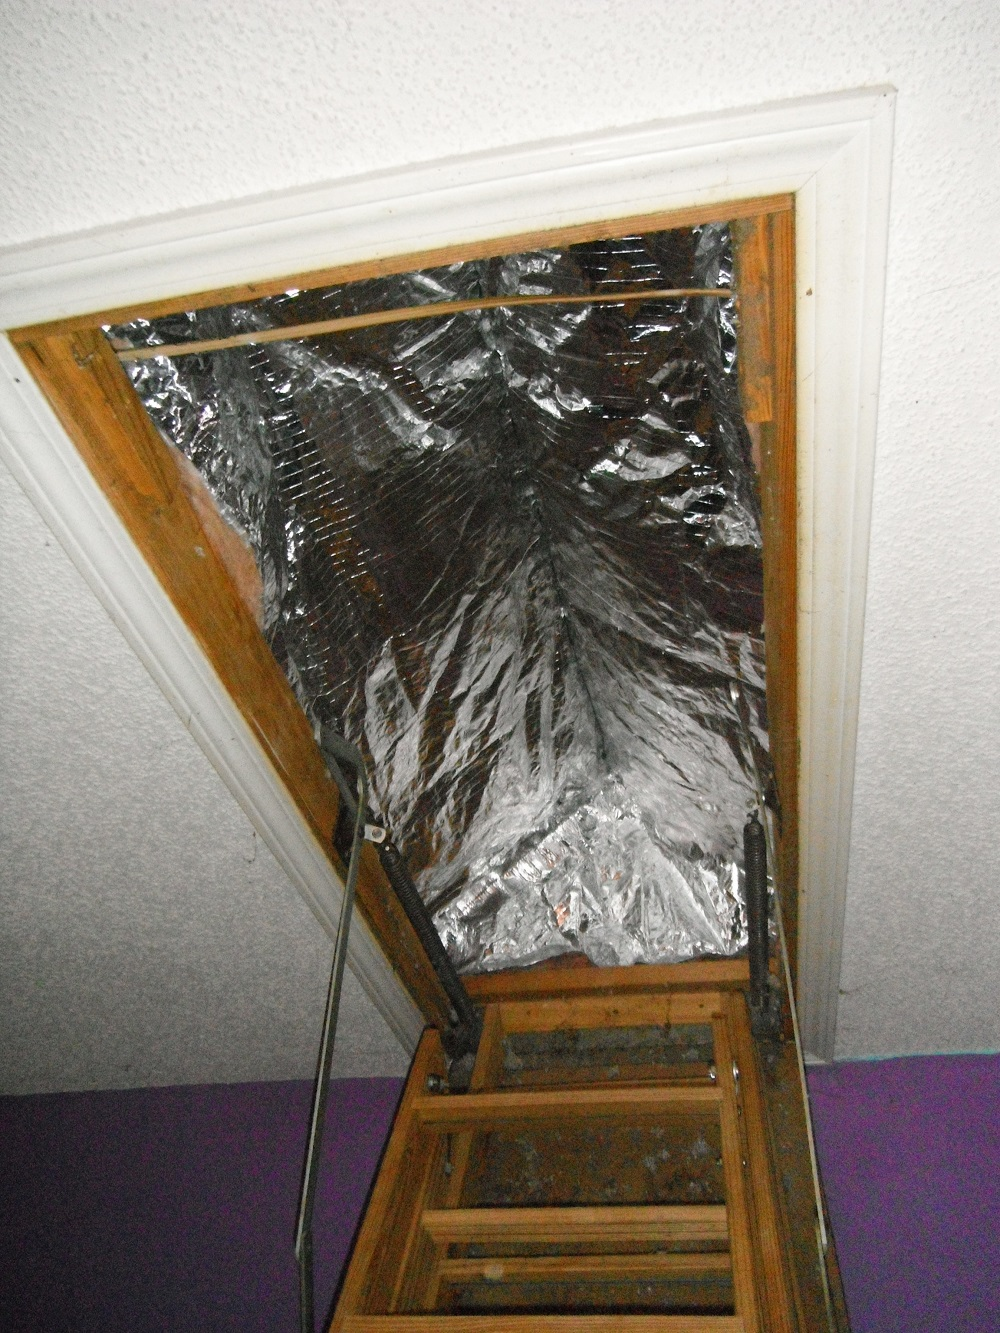 pull-down stairs insulated with a purchased insulating tent. Not much air sealing value.